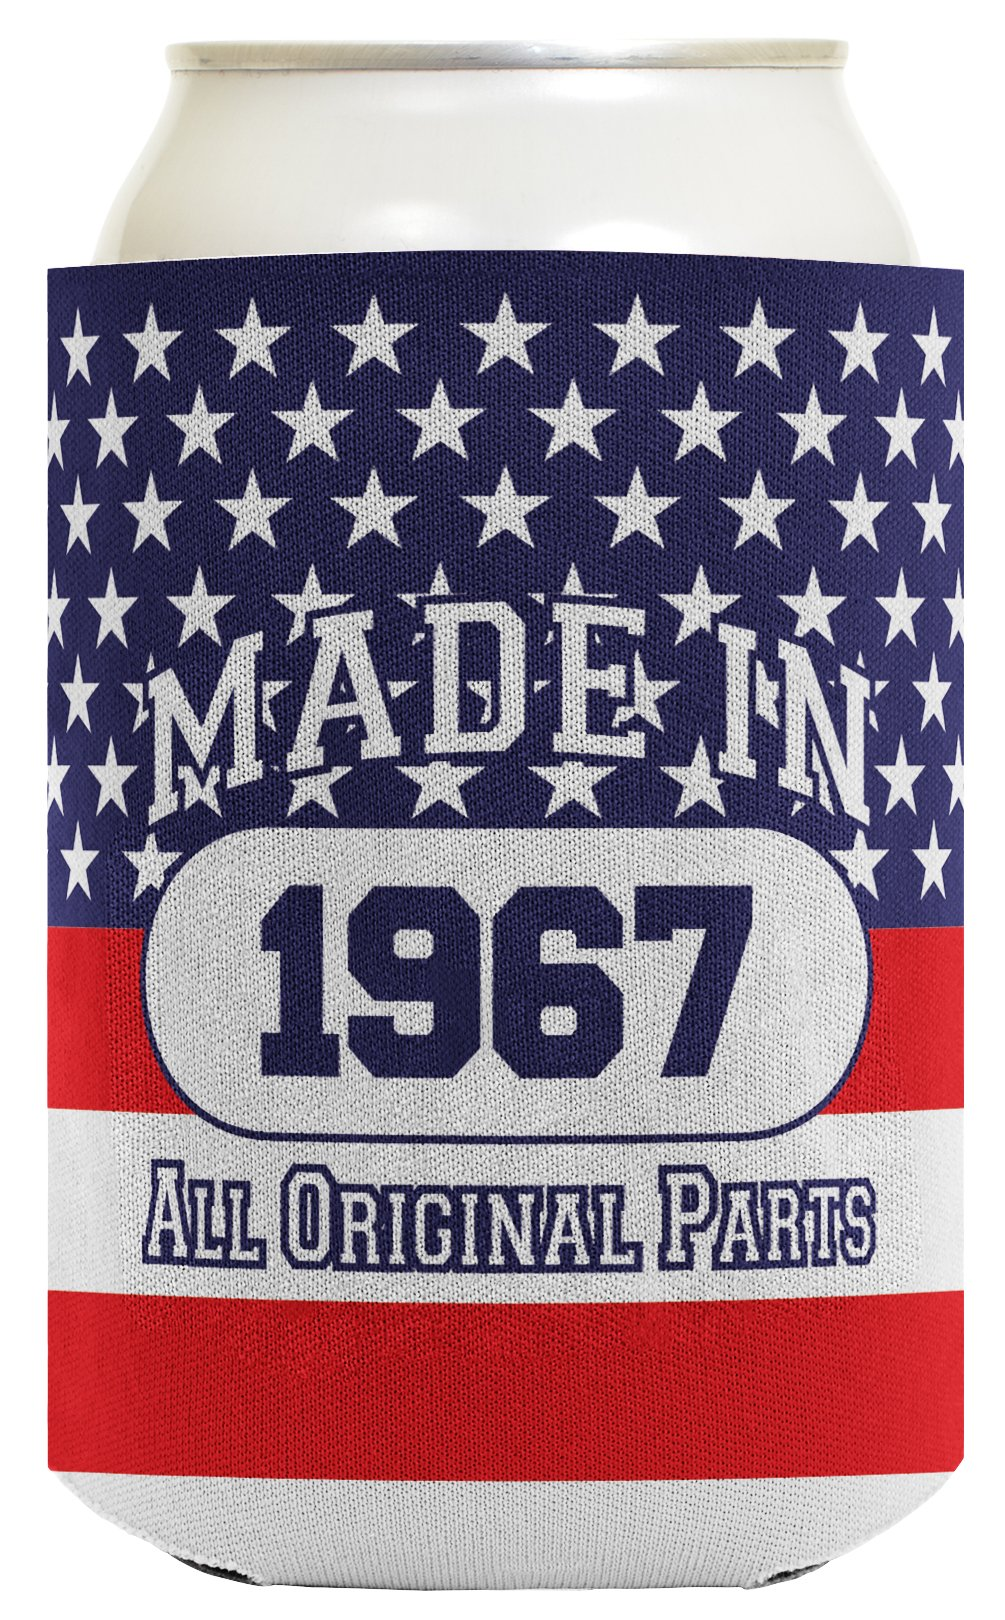 50th Birthday Gift Coolie Made 1968 Can Coolies 2 Pack Can Coolie Drink Coolers Coolies Patriotic by ThisWear (Image #3)